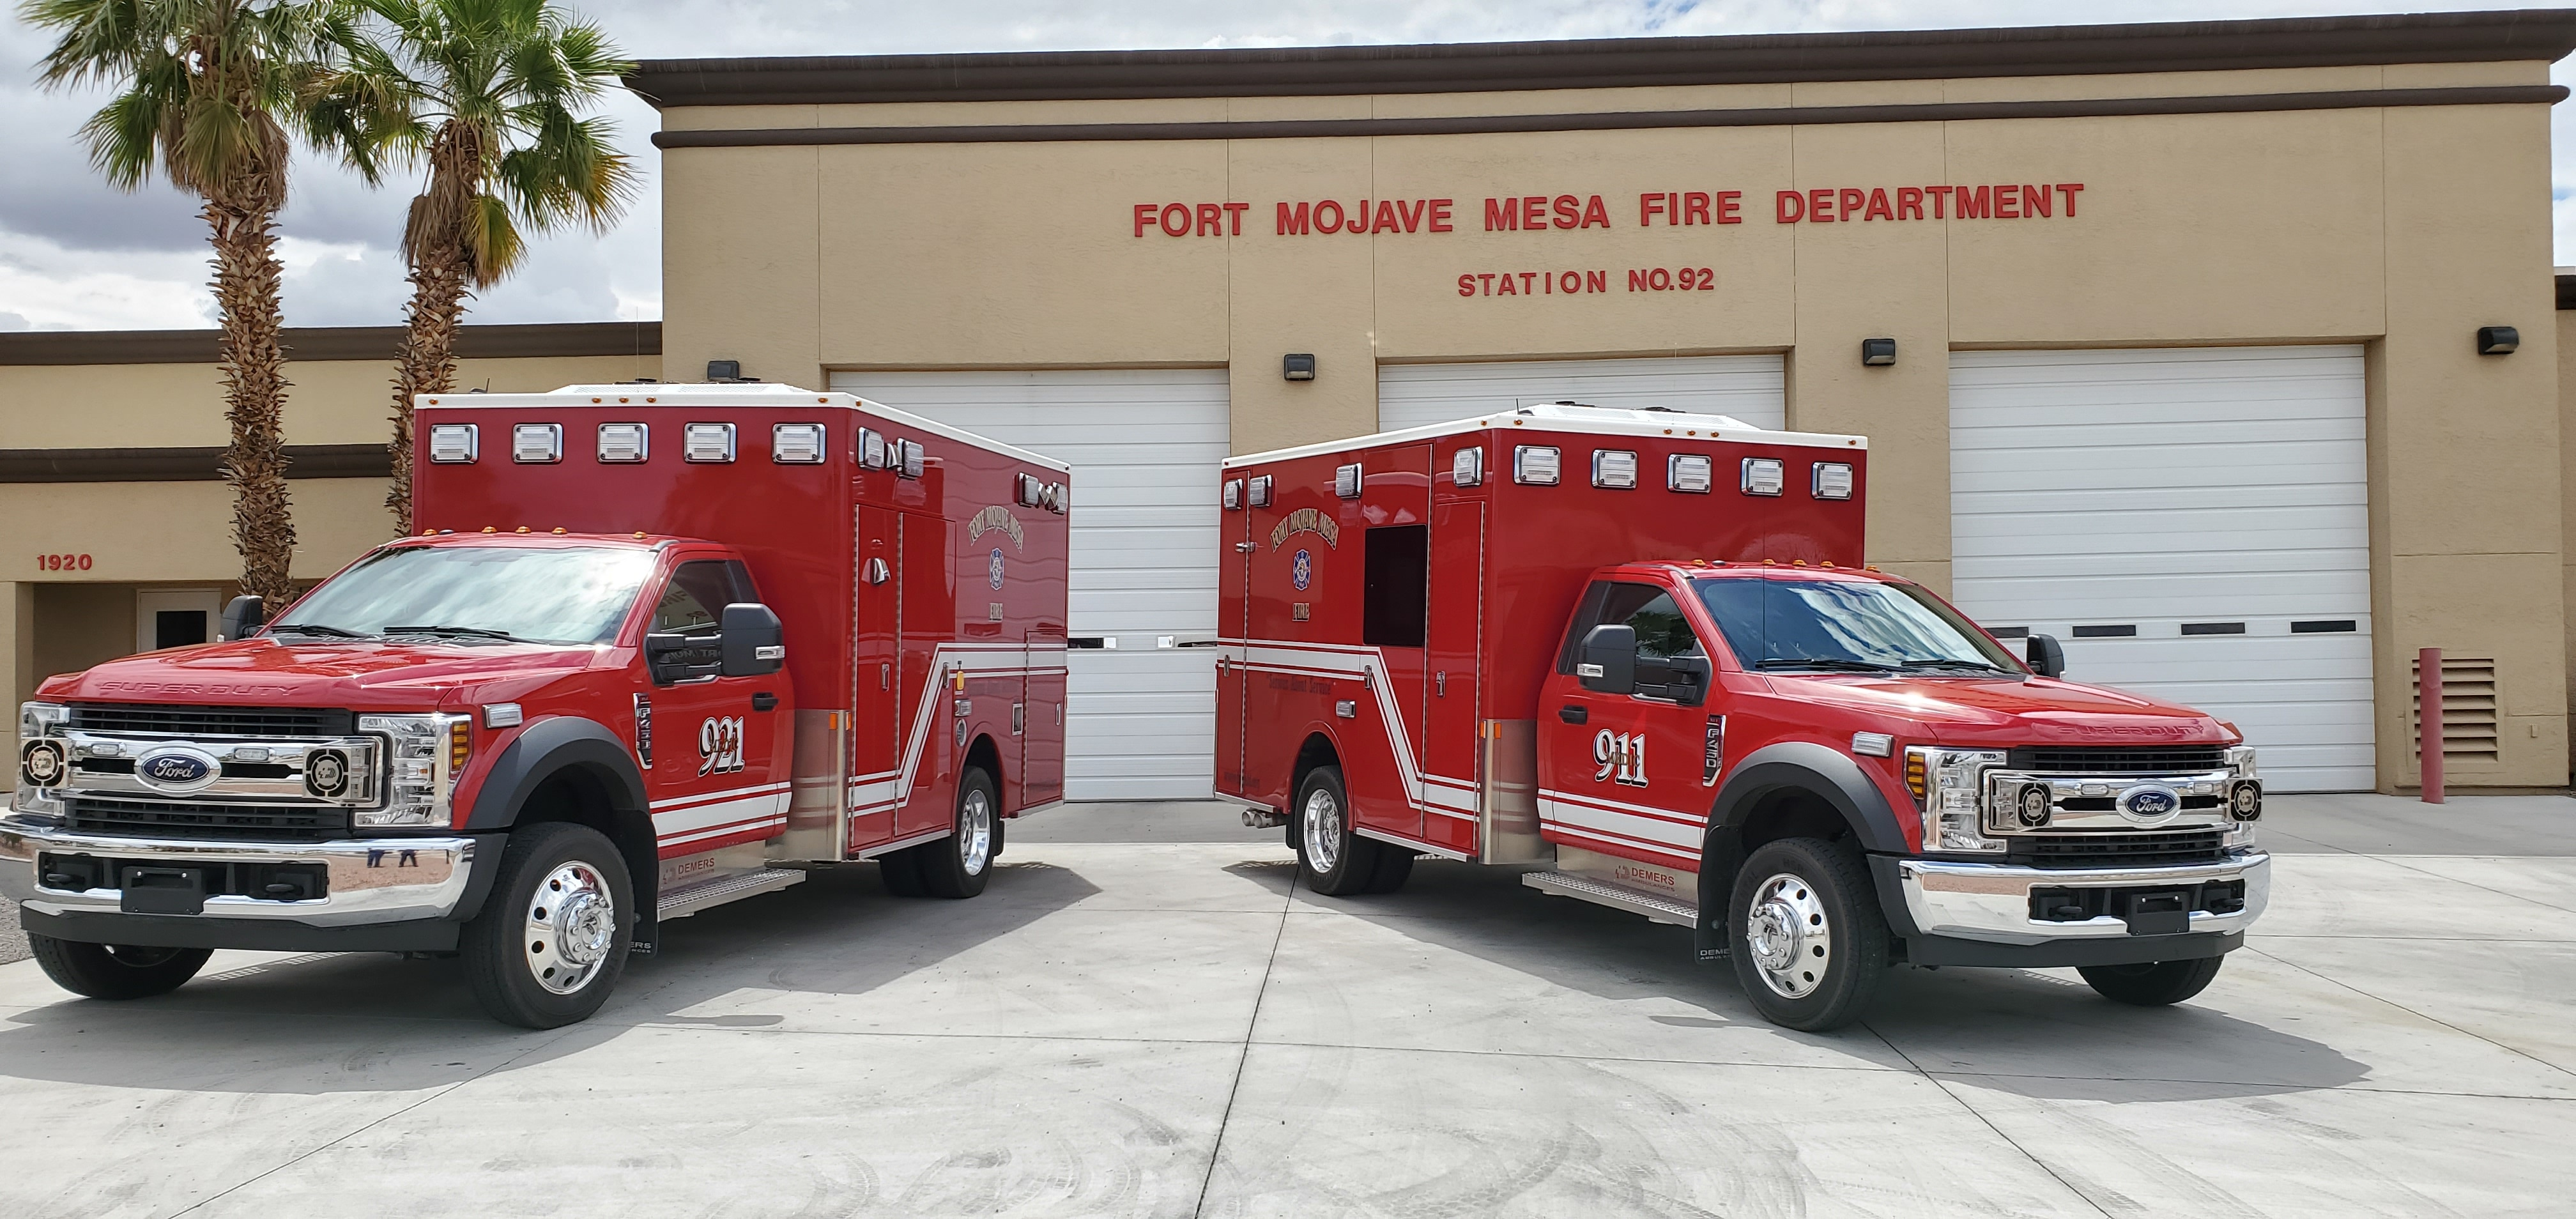 Fort Mojave Mesa FD: Demers MXP150 Type I